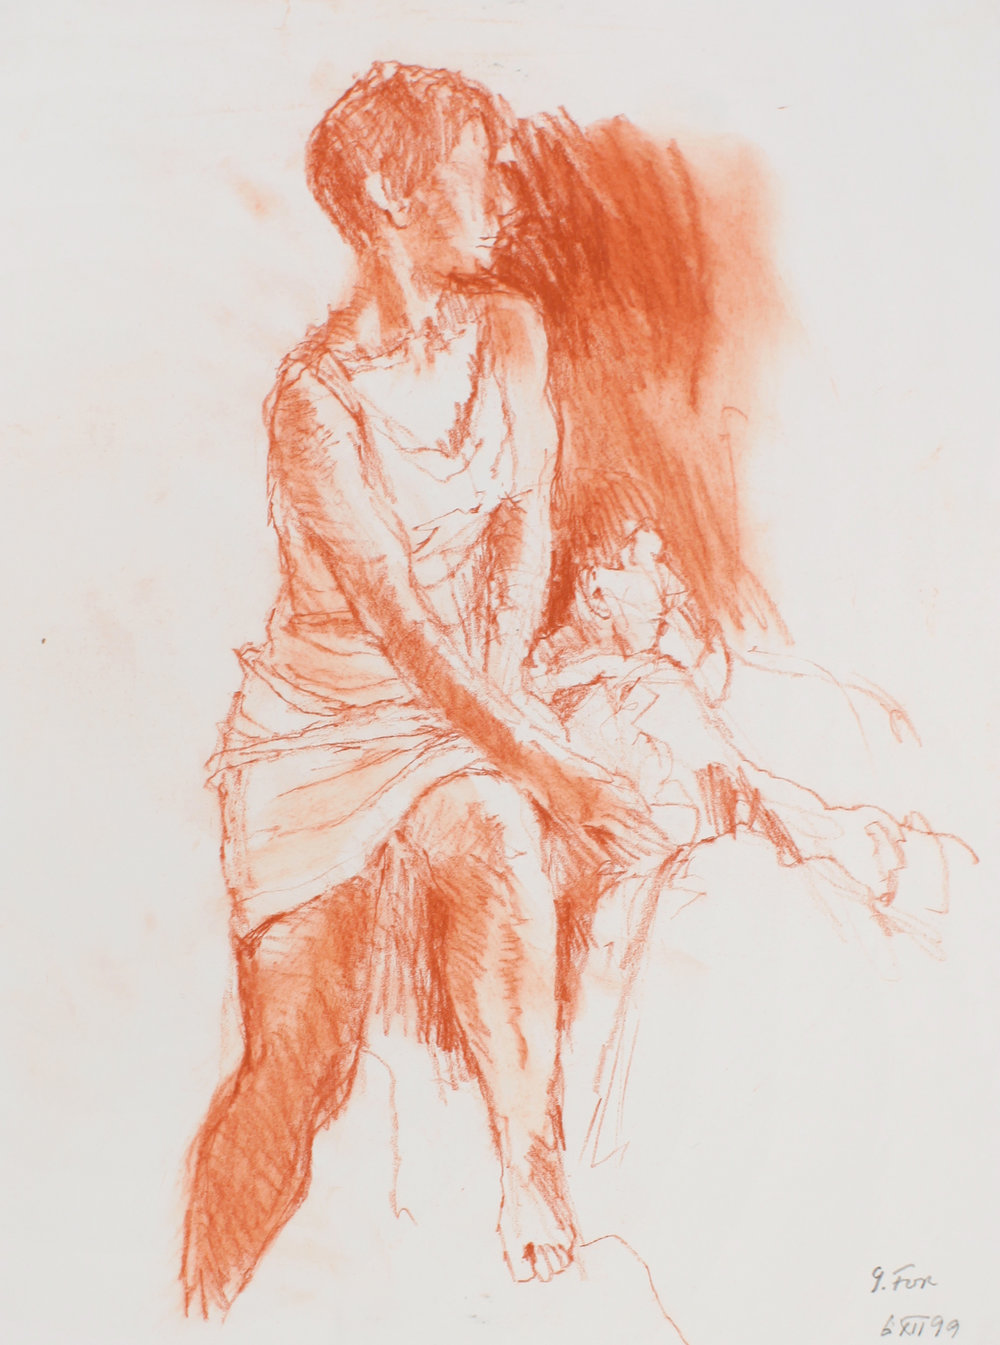 1999_Seated_Female_Wearing_Dress_red_conte_on_paper_15x11in_WPF543.jpg